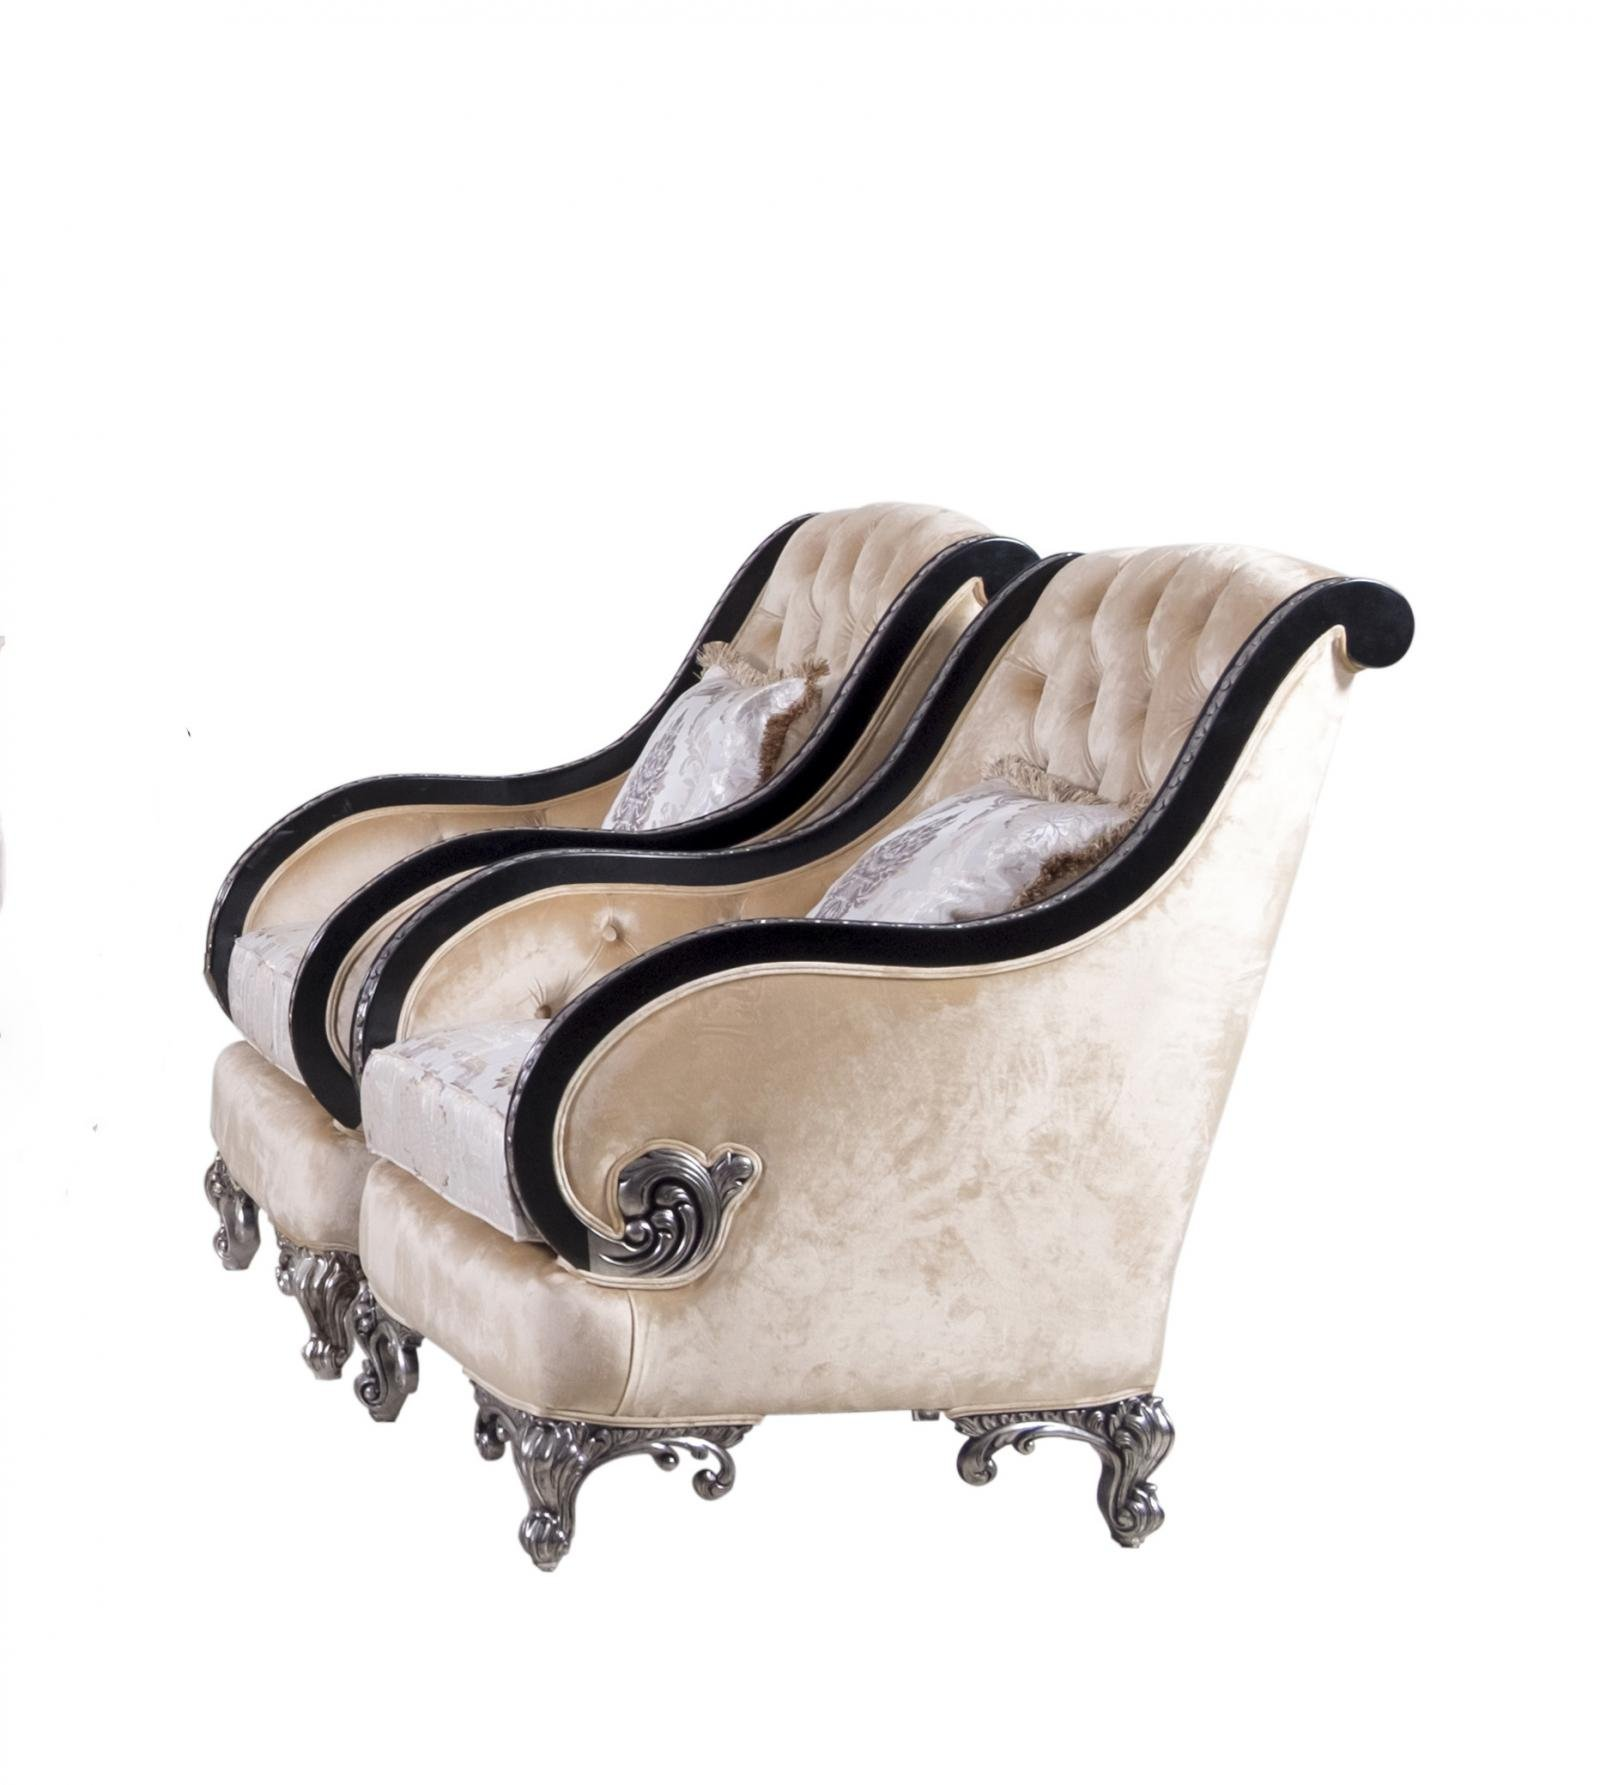 Classic  Traditional Black  Silver  Antique Wood  Solid Hardwood and Fabric Arm Chair Set EUROPEAN FURNITURE 35022-C -Set-2